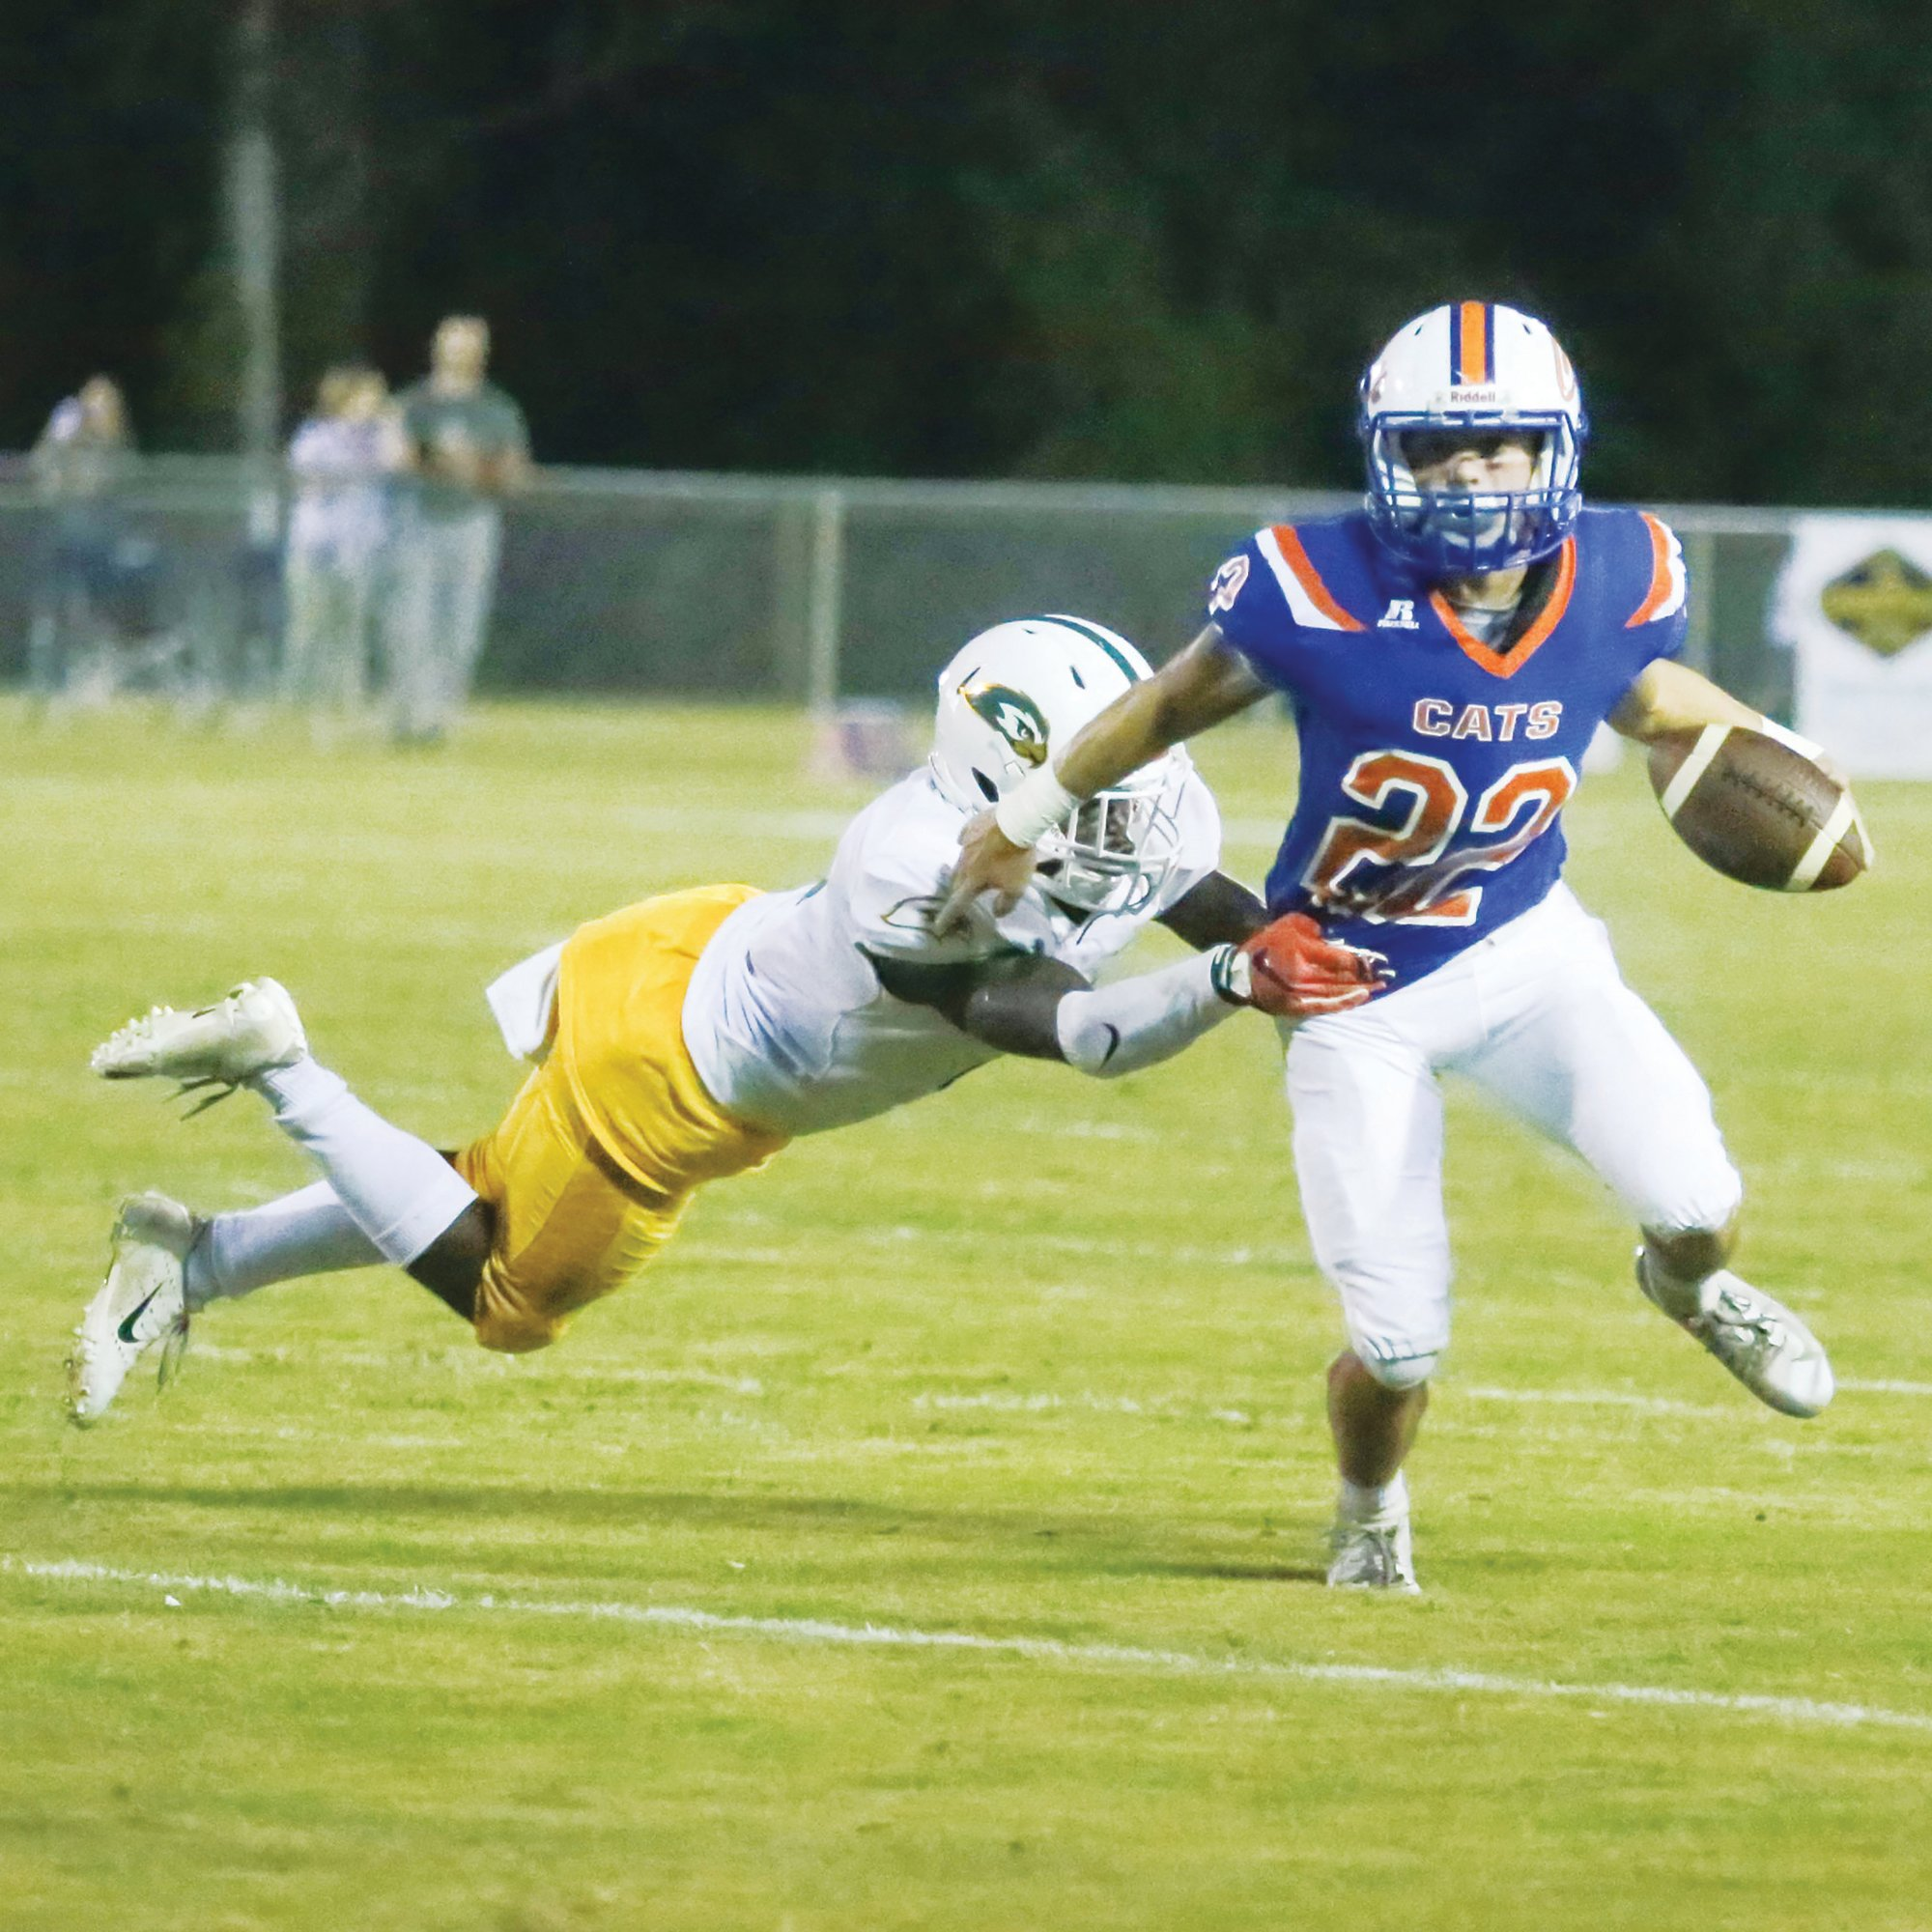 SUMTER ITEM FILE PHOTORunning back Wyatt Rowland (22) will be one of the leaders of the Laurence Manning offense when the Swampcats open the season on Friday on the road against Augusta Christian School.